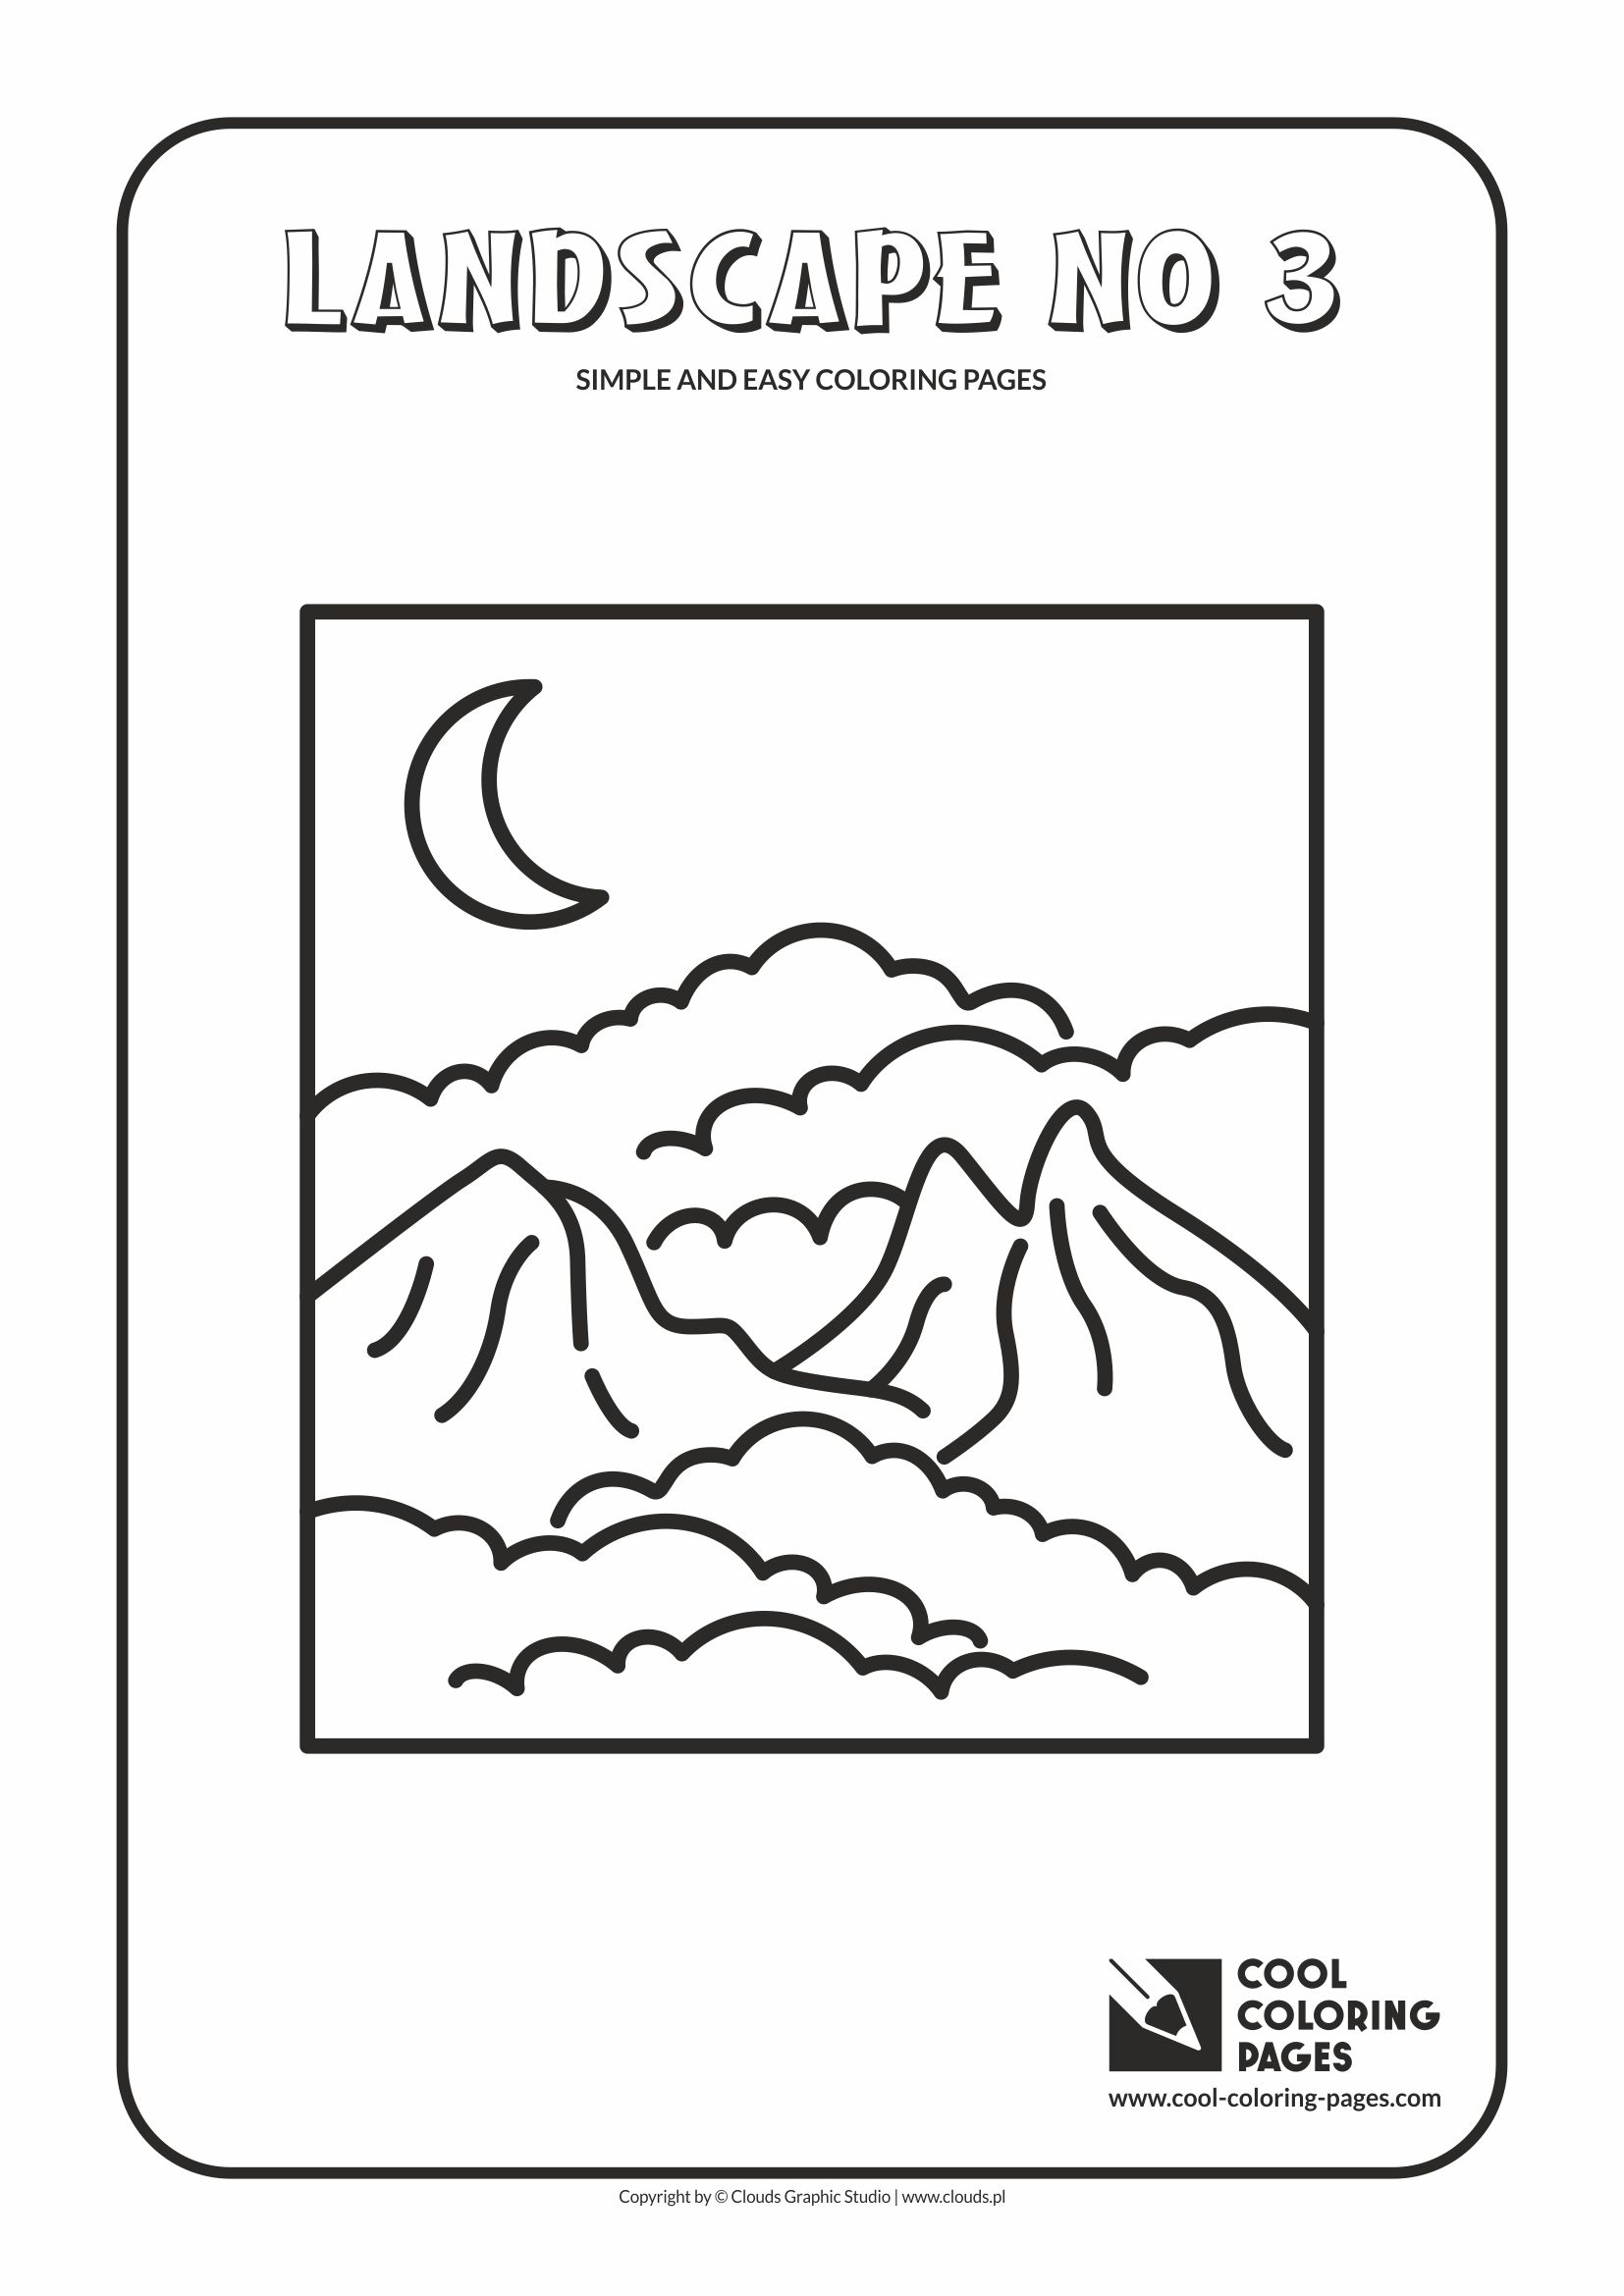 Simple and easy coloring pages for toddlers - Landscape no 3